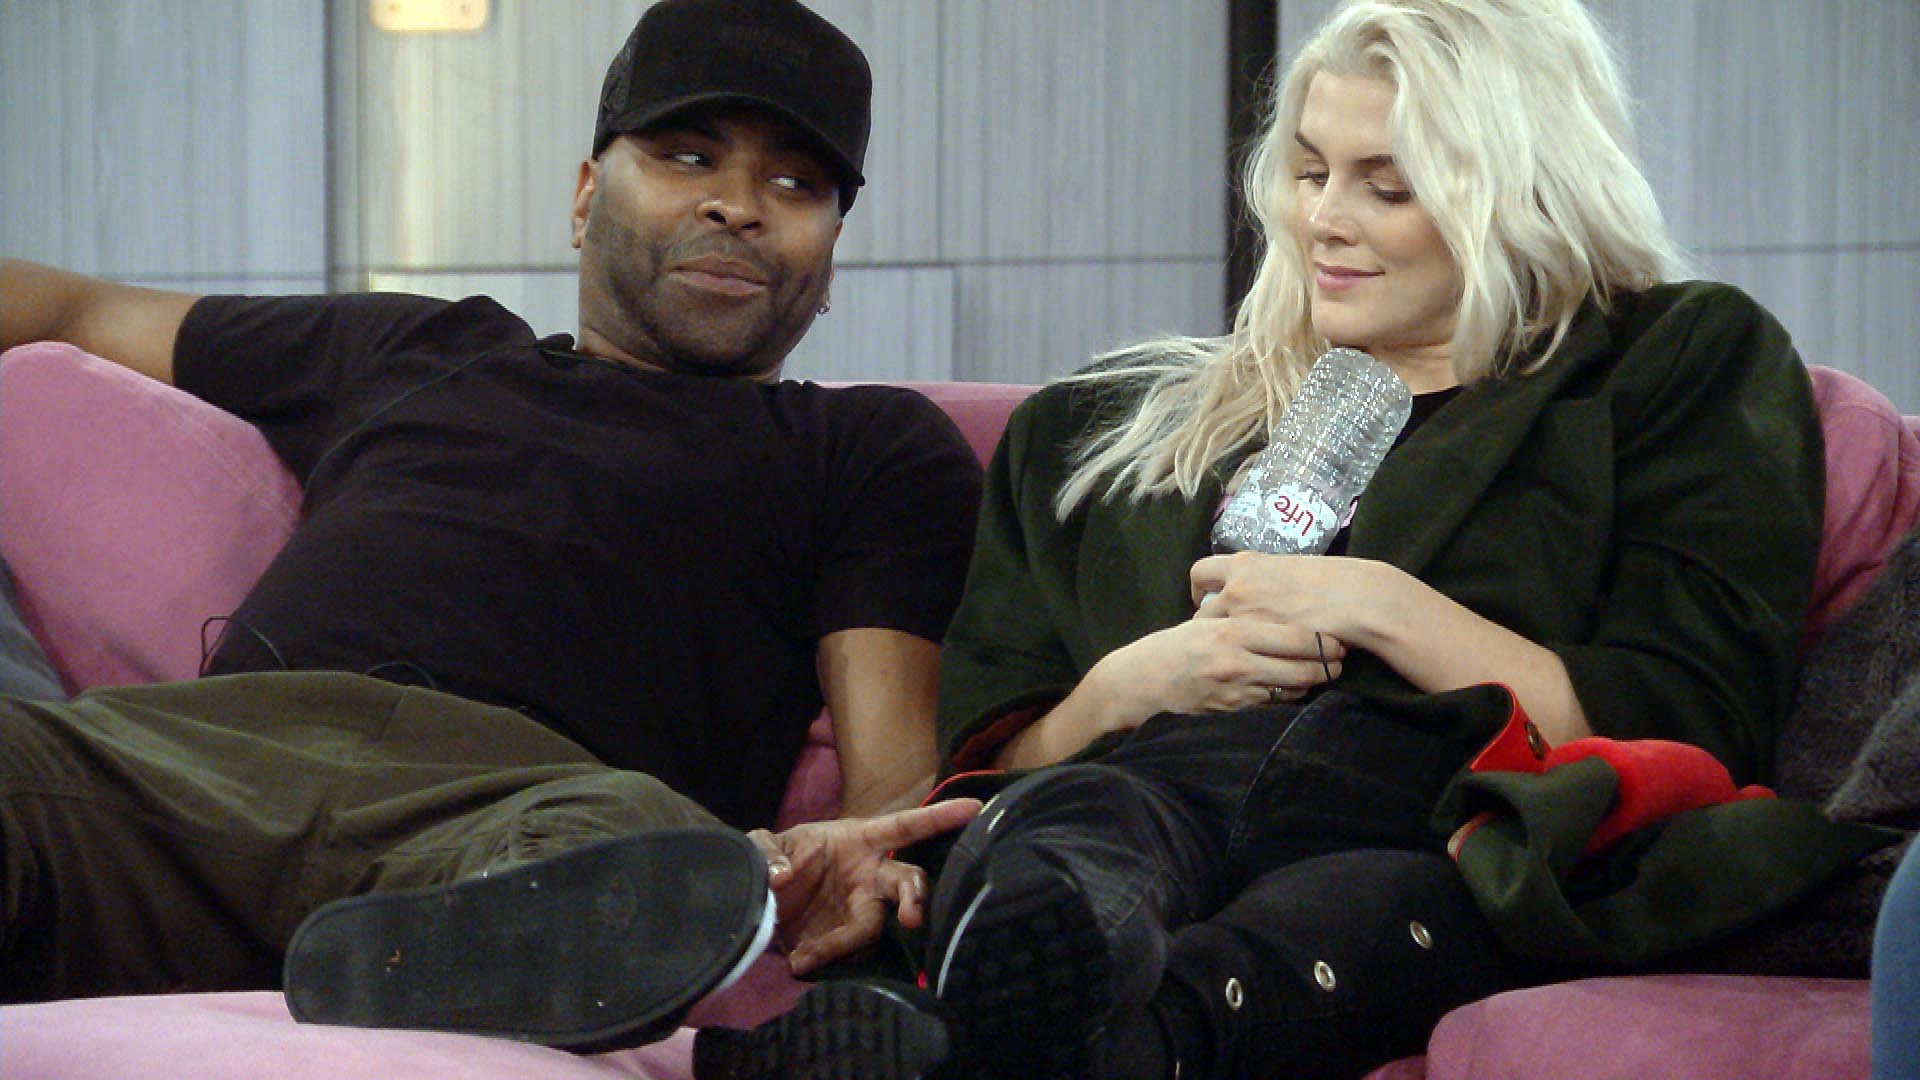 'Over it!' - CBB viewers bored of Ashley and Ginuwine's 'showmance'